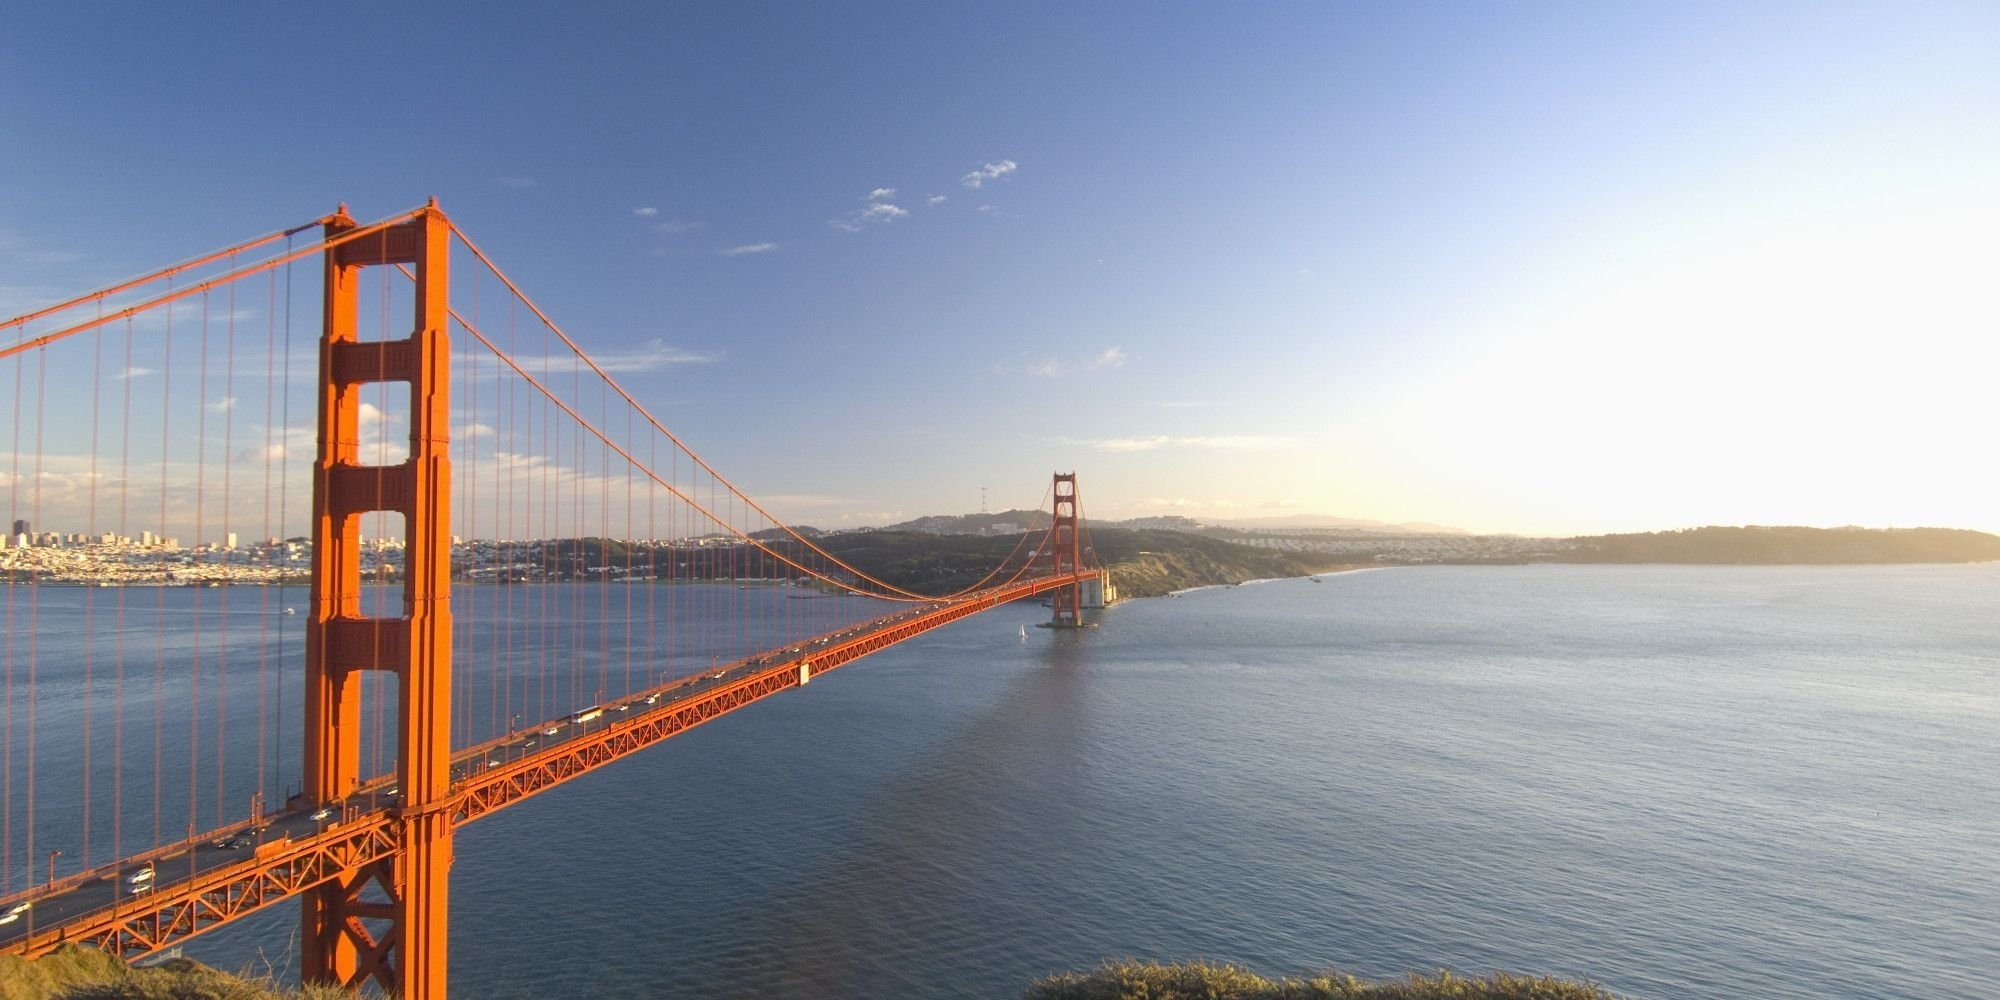 fall in love in san francisco | san francisco and san francisco